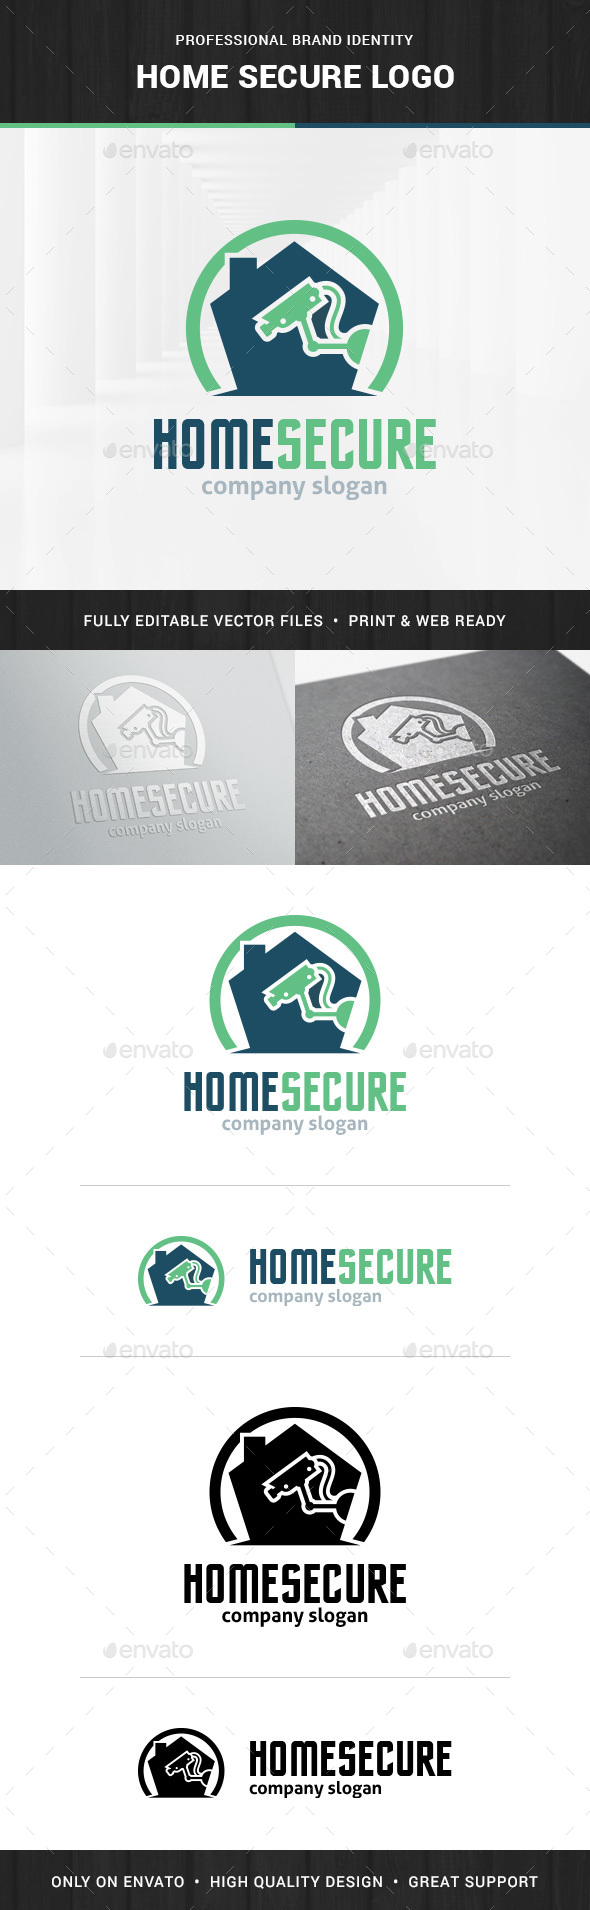 Home Secure Logo Template